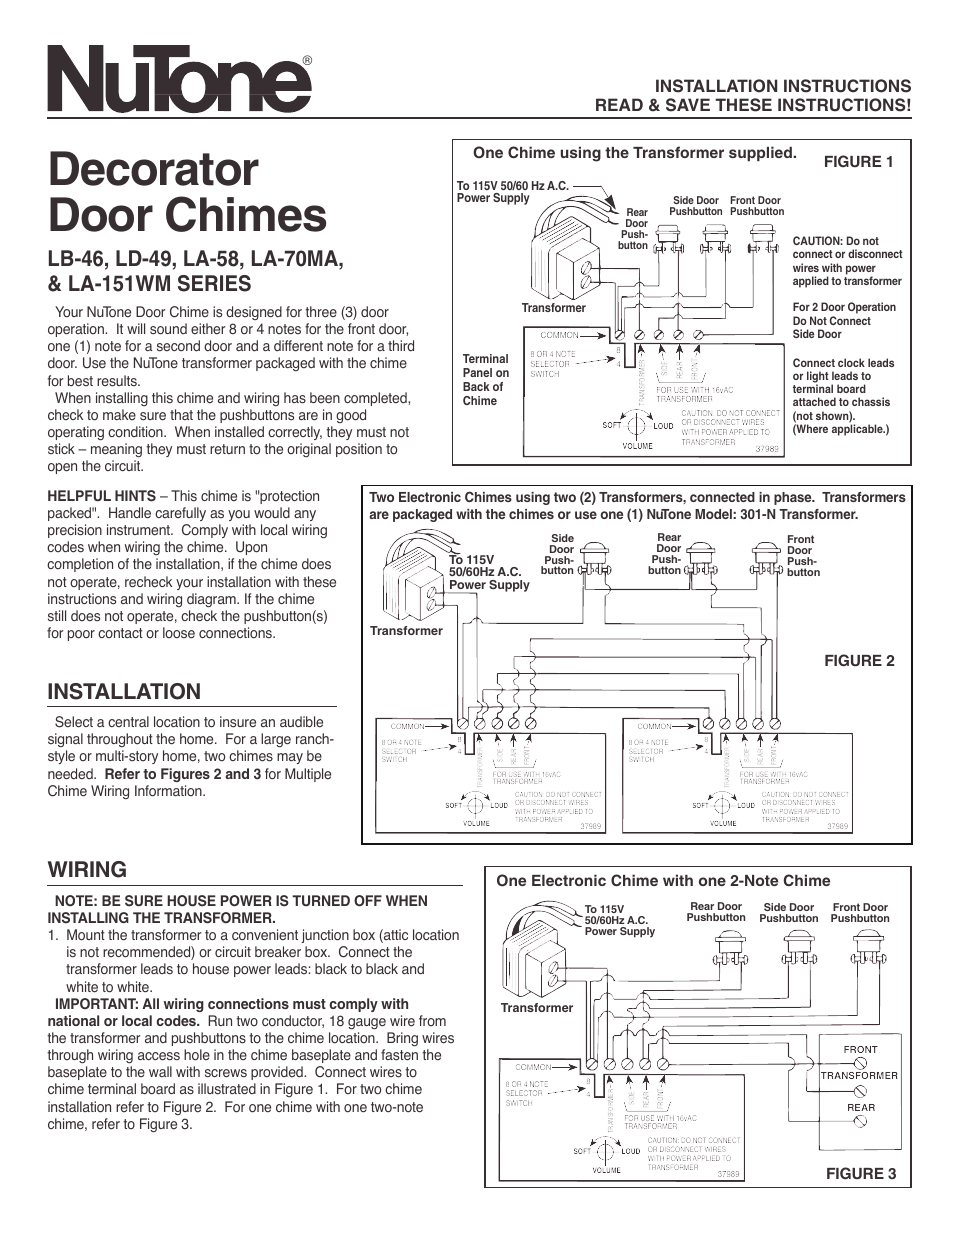 nutone decorator door chimes la-58 user manual | 2 pages ... nutone door bell wiring diagrams #10